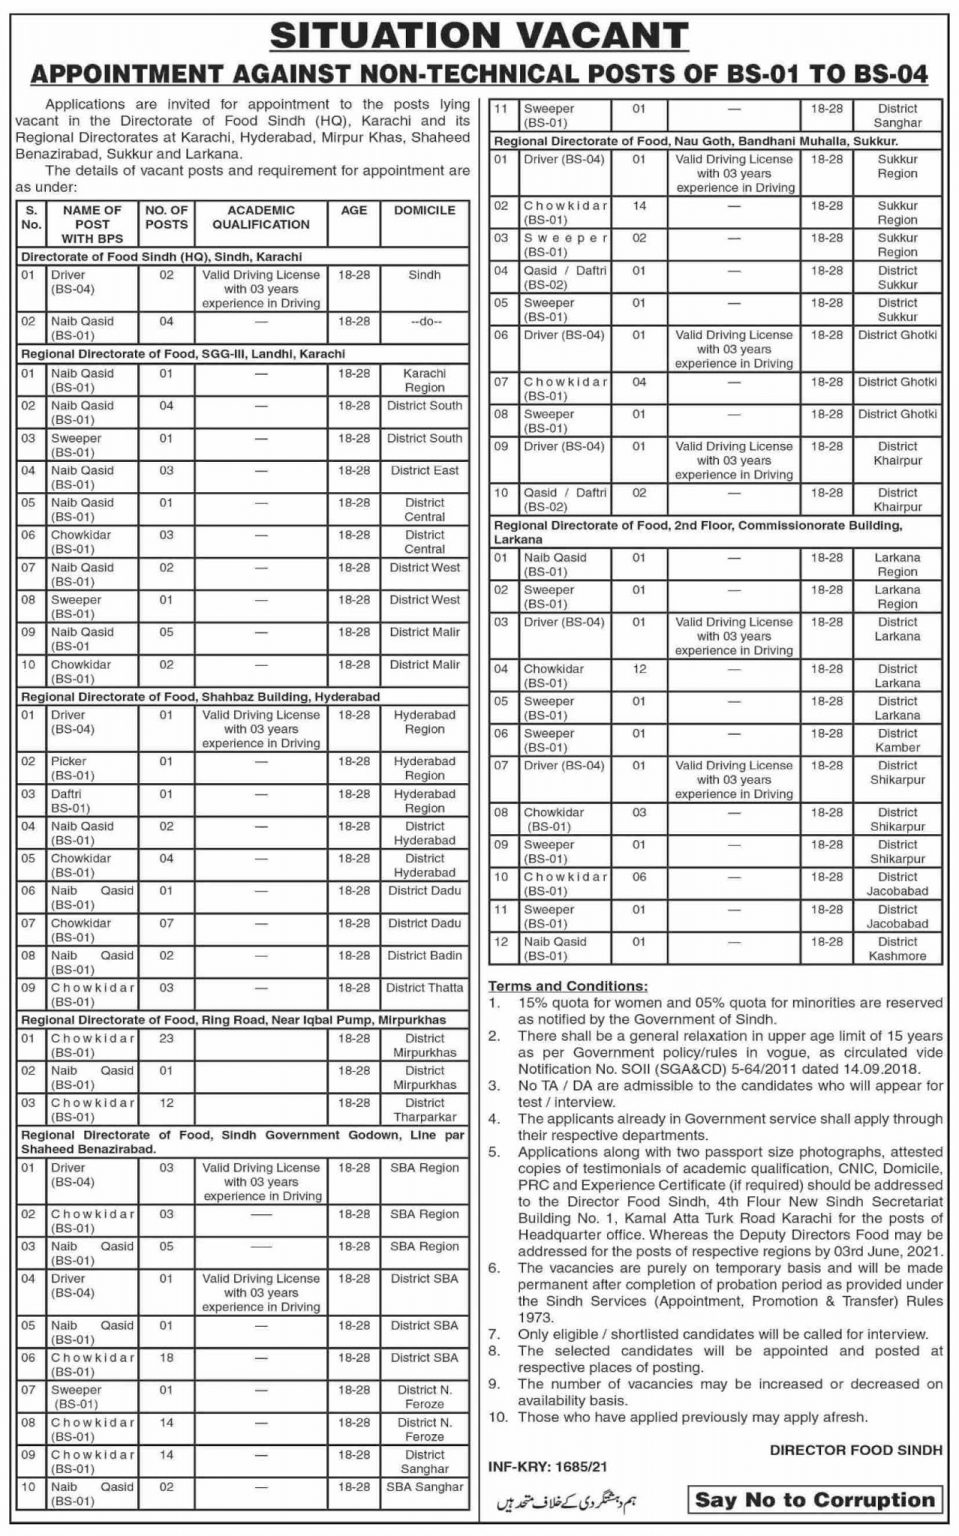 Food Department Jobs 2021 Govt Jobs 2021 Department: Sindh Food Department Newspaper: Dawn Newspaper Posted: 22 May 2021 Last date: 03 June 2021 This page is about Food Department Jobs 2021 (208 posts) Last comment. Sindh Food Office invites applications for the articles an account / endure reason of a suitable competitor for positions like Driver, Naib Cassid, Sweeper, Chowkidar, Picker, Daftari Driver, Dispatch Rider, Female Specialist, Conductor, Cook, Clean Worker. The chances are disseminated in Daybreak Paper, extraordinary among other Paper of Pakistan. This development was distributed on 22 May 2021, and the last day to apply is 03 June 2021. Vacancies / Positions Naive Cassid Driver Sweeper Picker Chowkidar